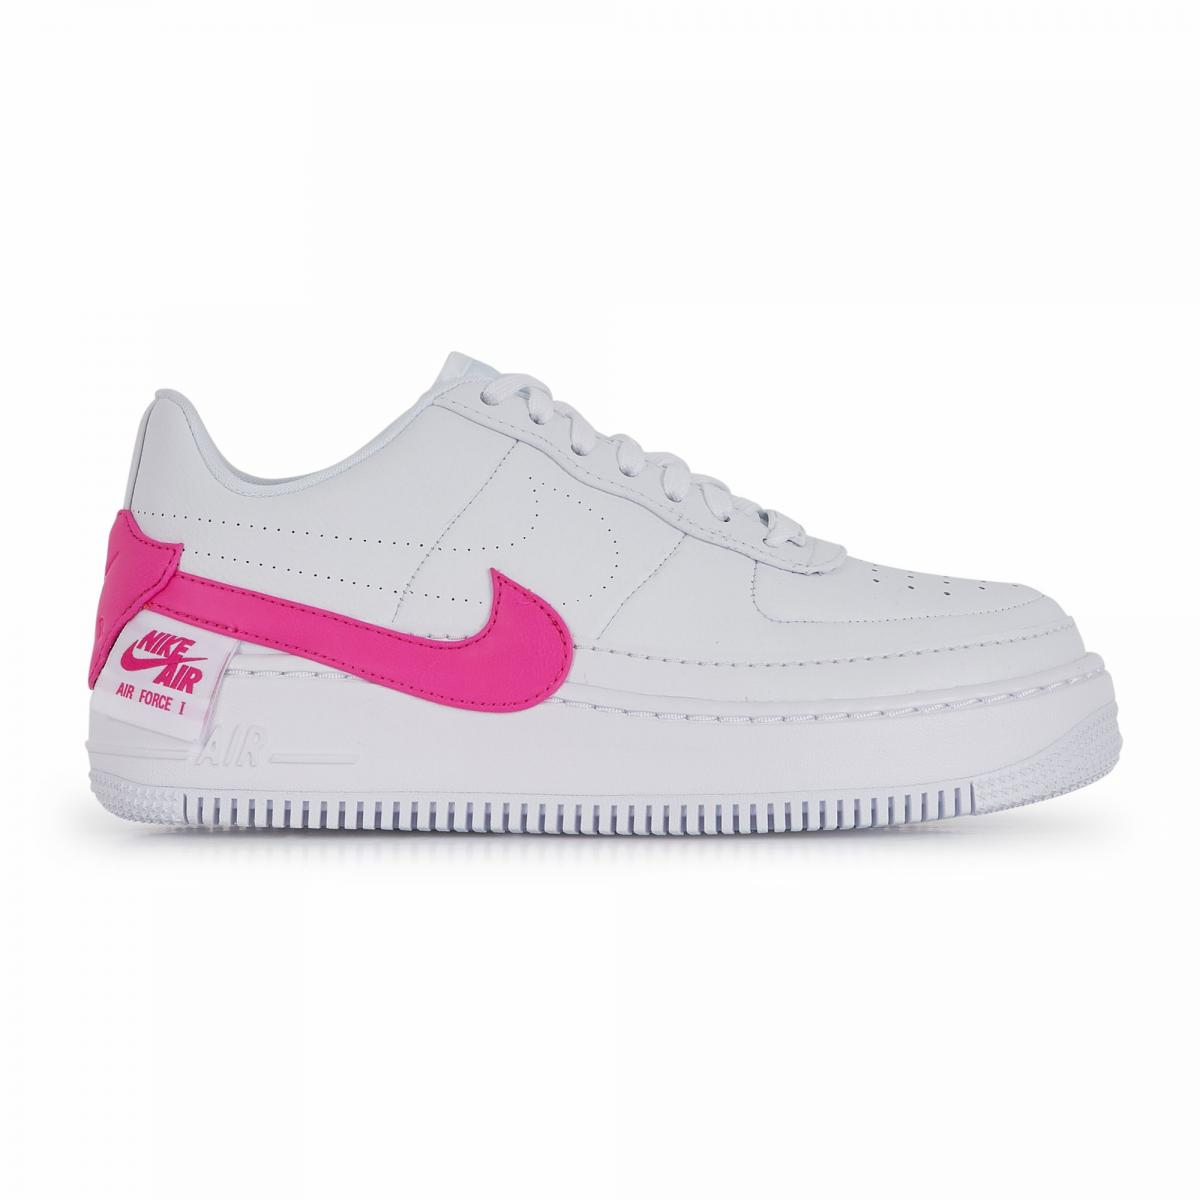 nike air force 1 rouge et blanche femme,Nike Air Force 1'07 ...